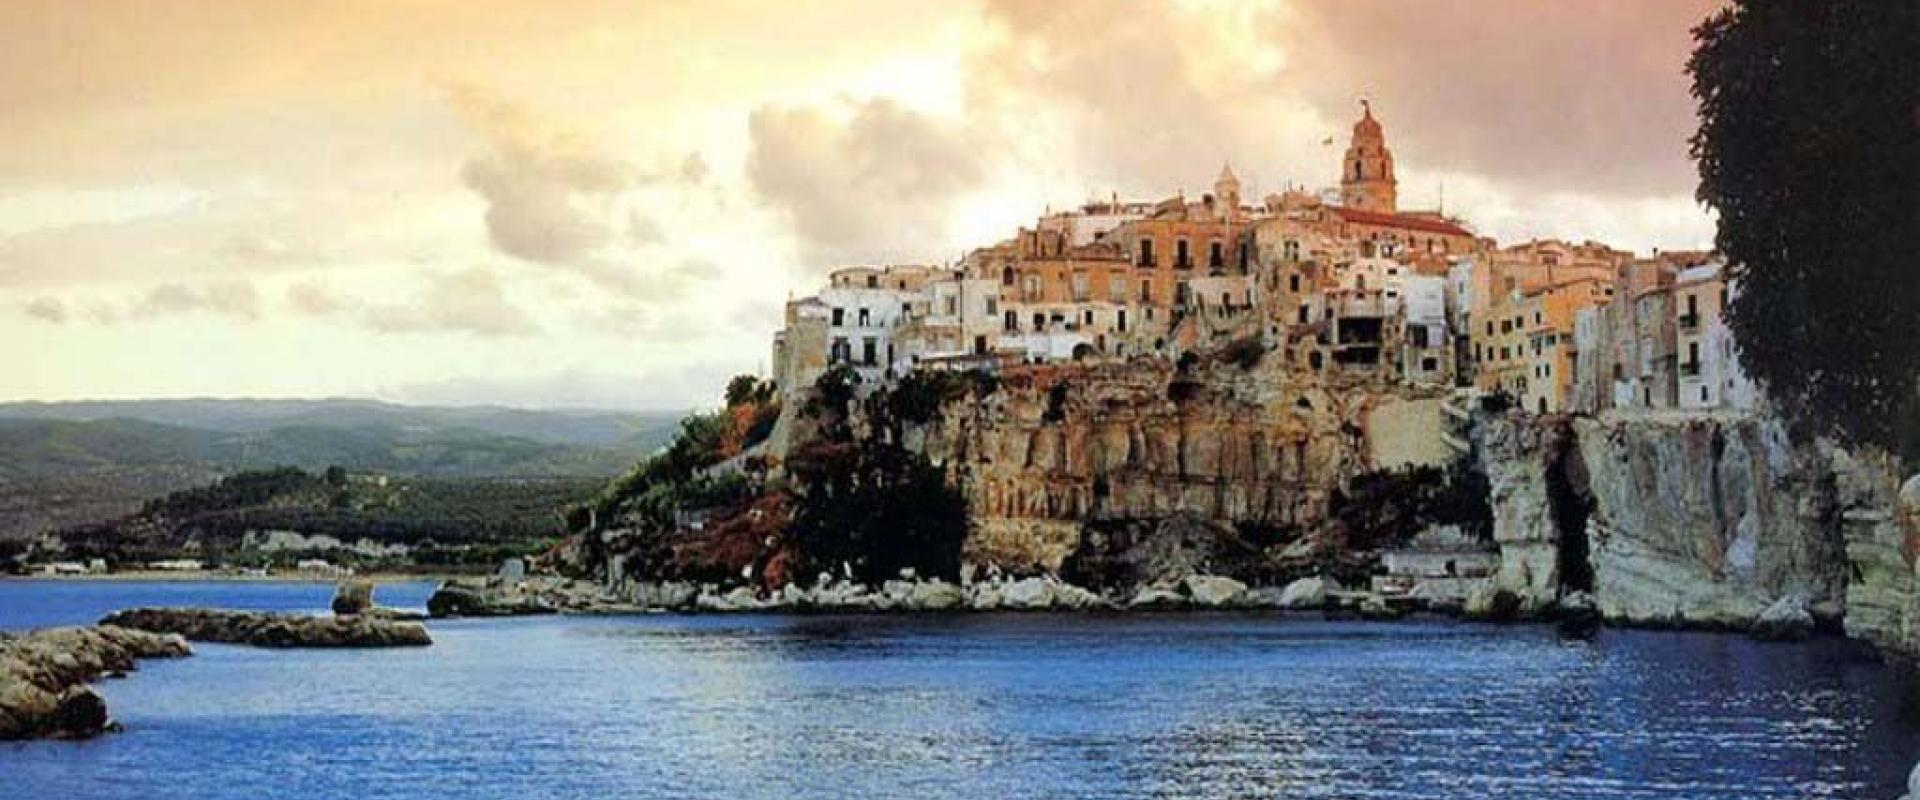 Tour in Apulia The wonderful scenery of the Daunia Mountains and the Gargano Mountains